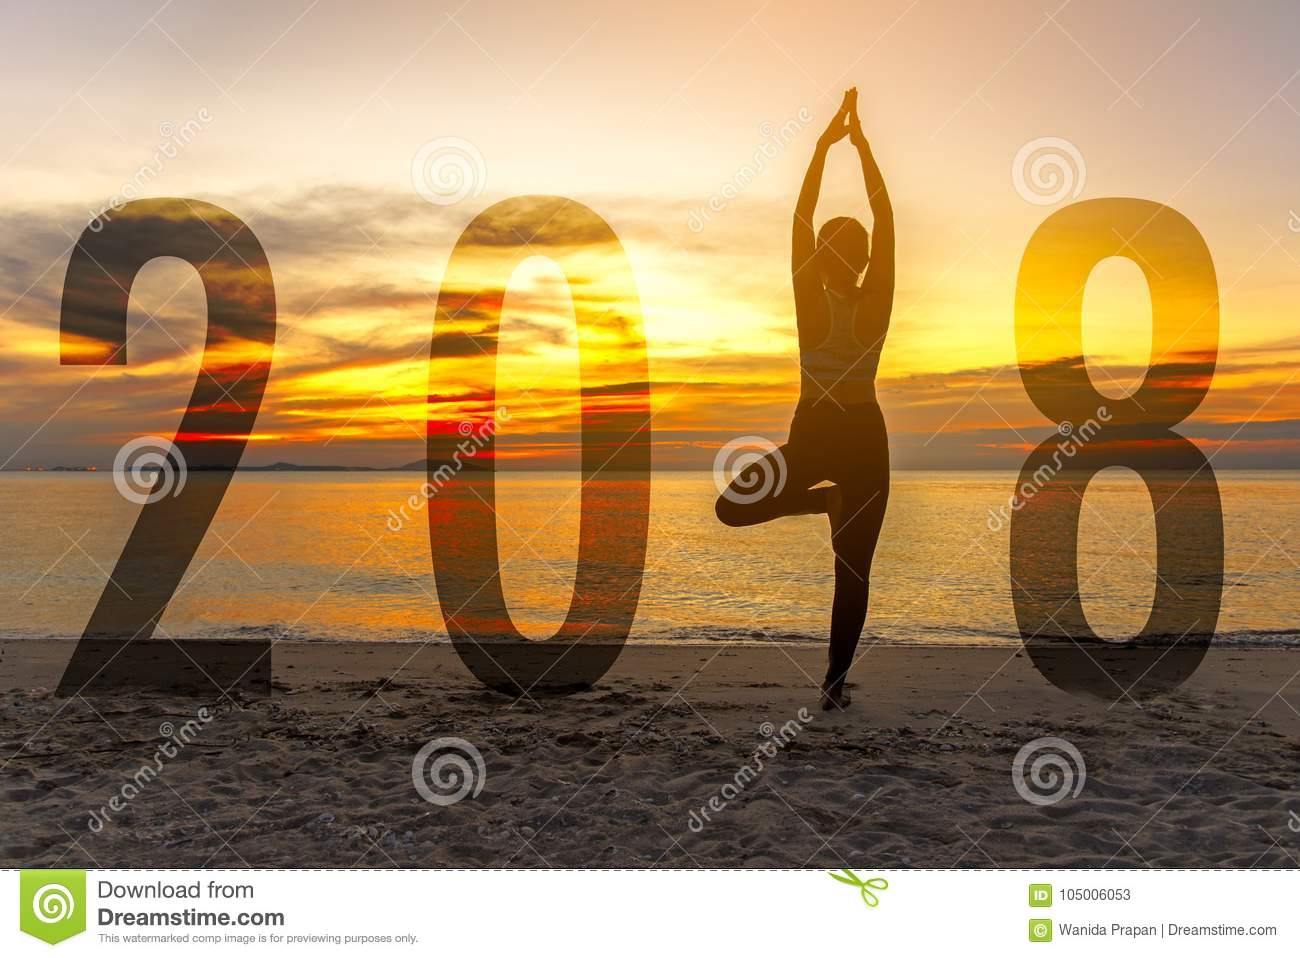 Yoga Happy new year card 2018. Silhouette woman practicing yoga standing as part of Number 2018